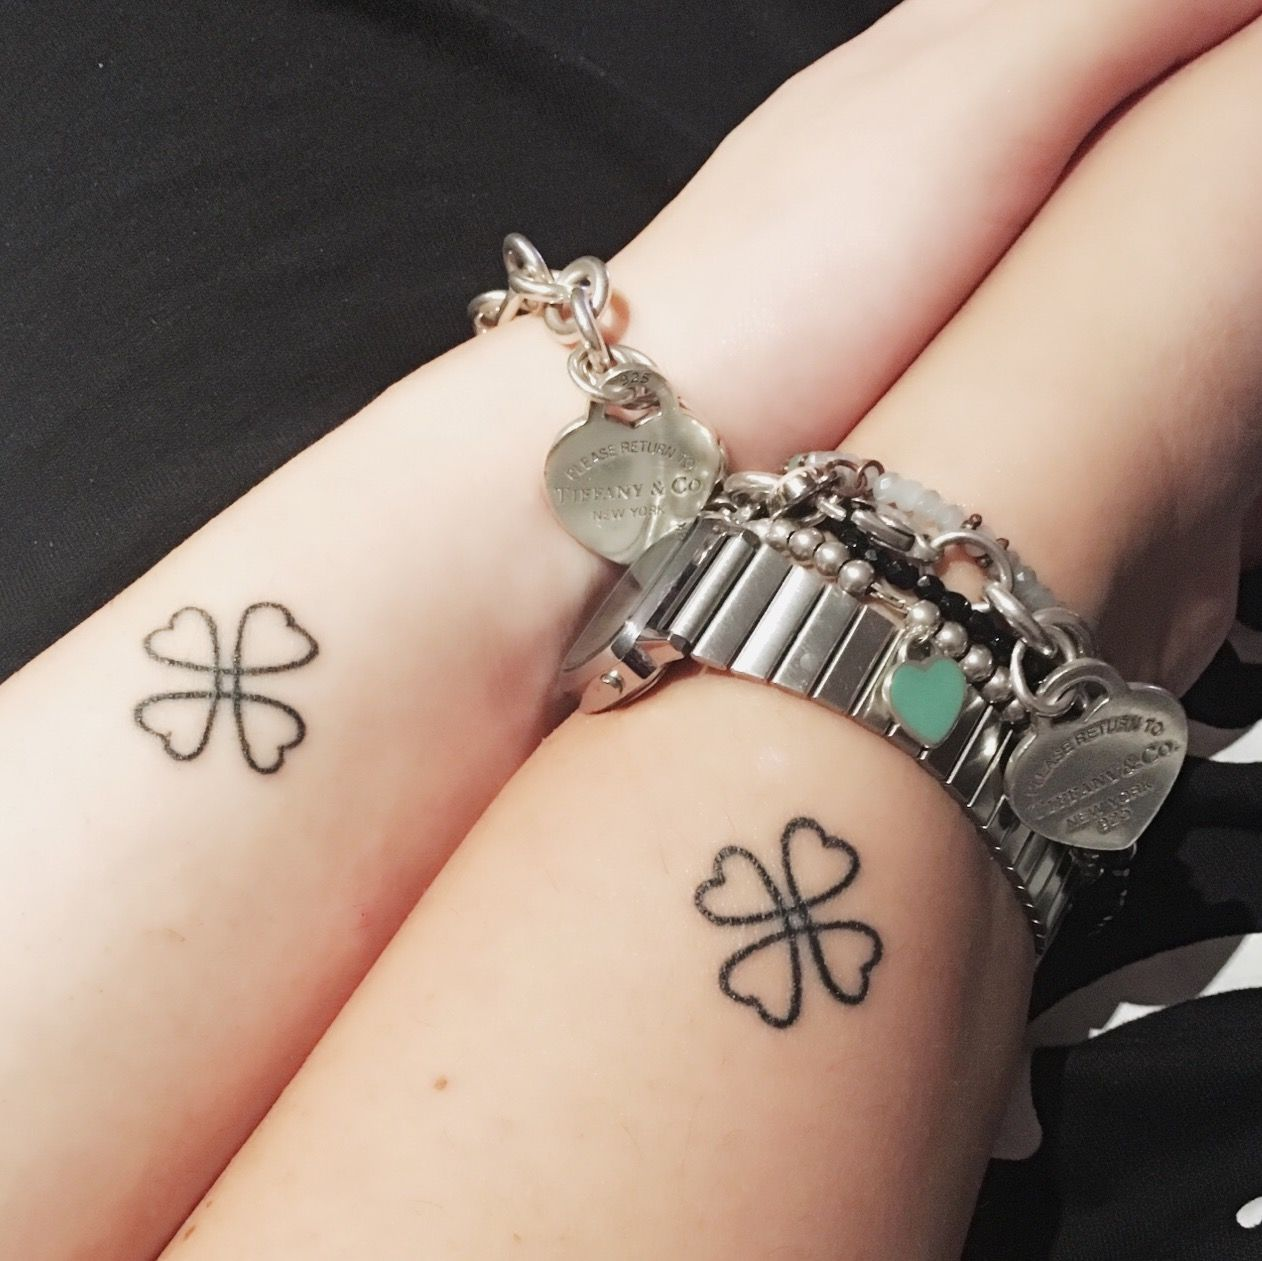 Friendship Tattoo Me And My Bestfriend Love Lucky Four Leaf Clover